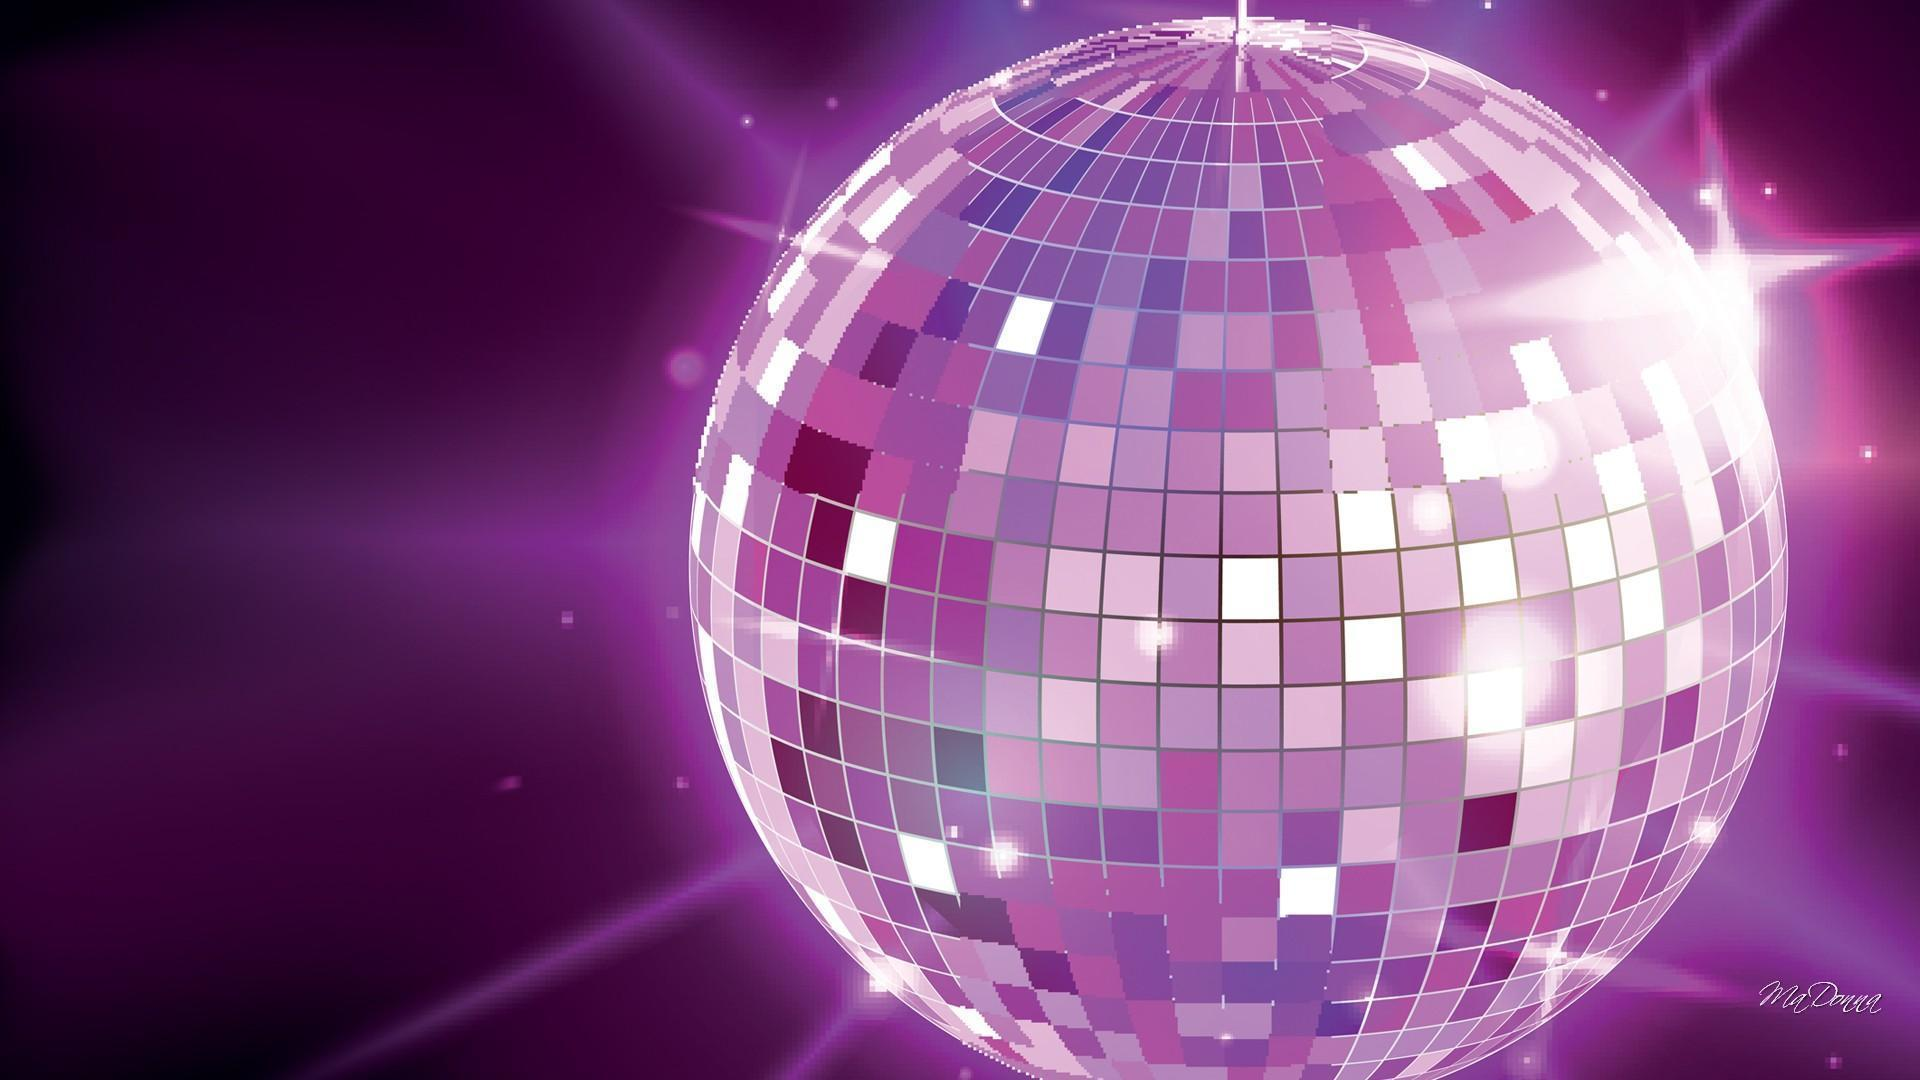 Disco Ball Wallpapers - Wallpaper - 141.7KB